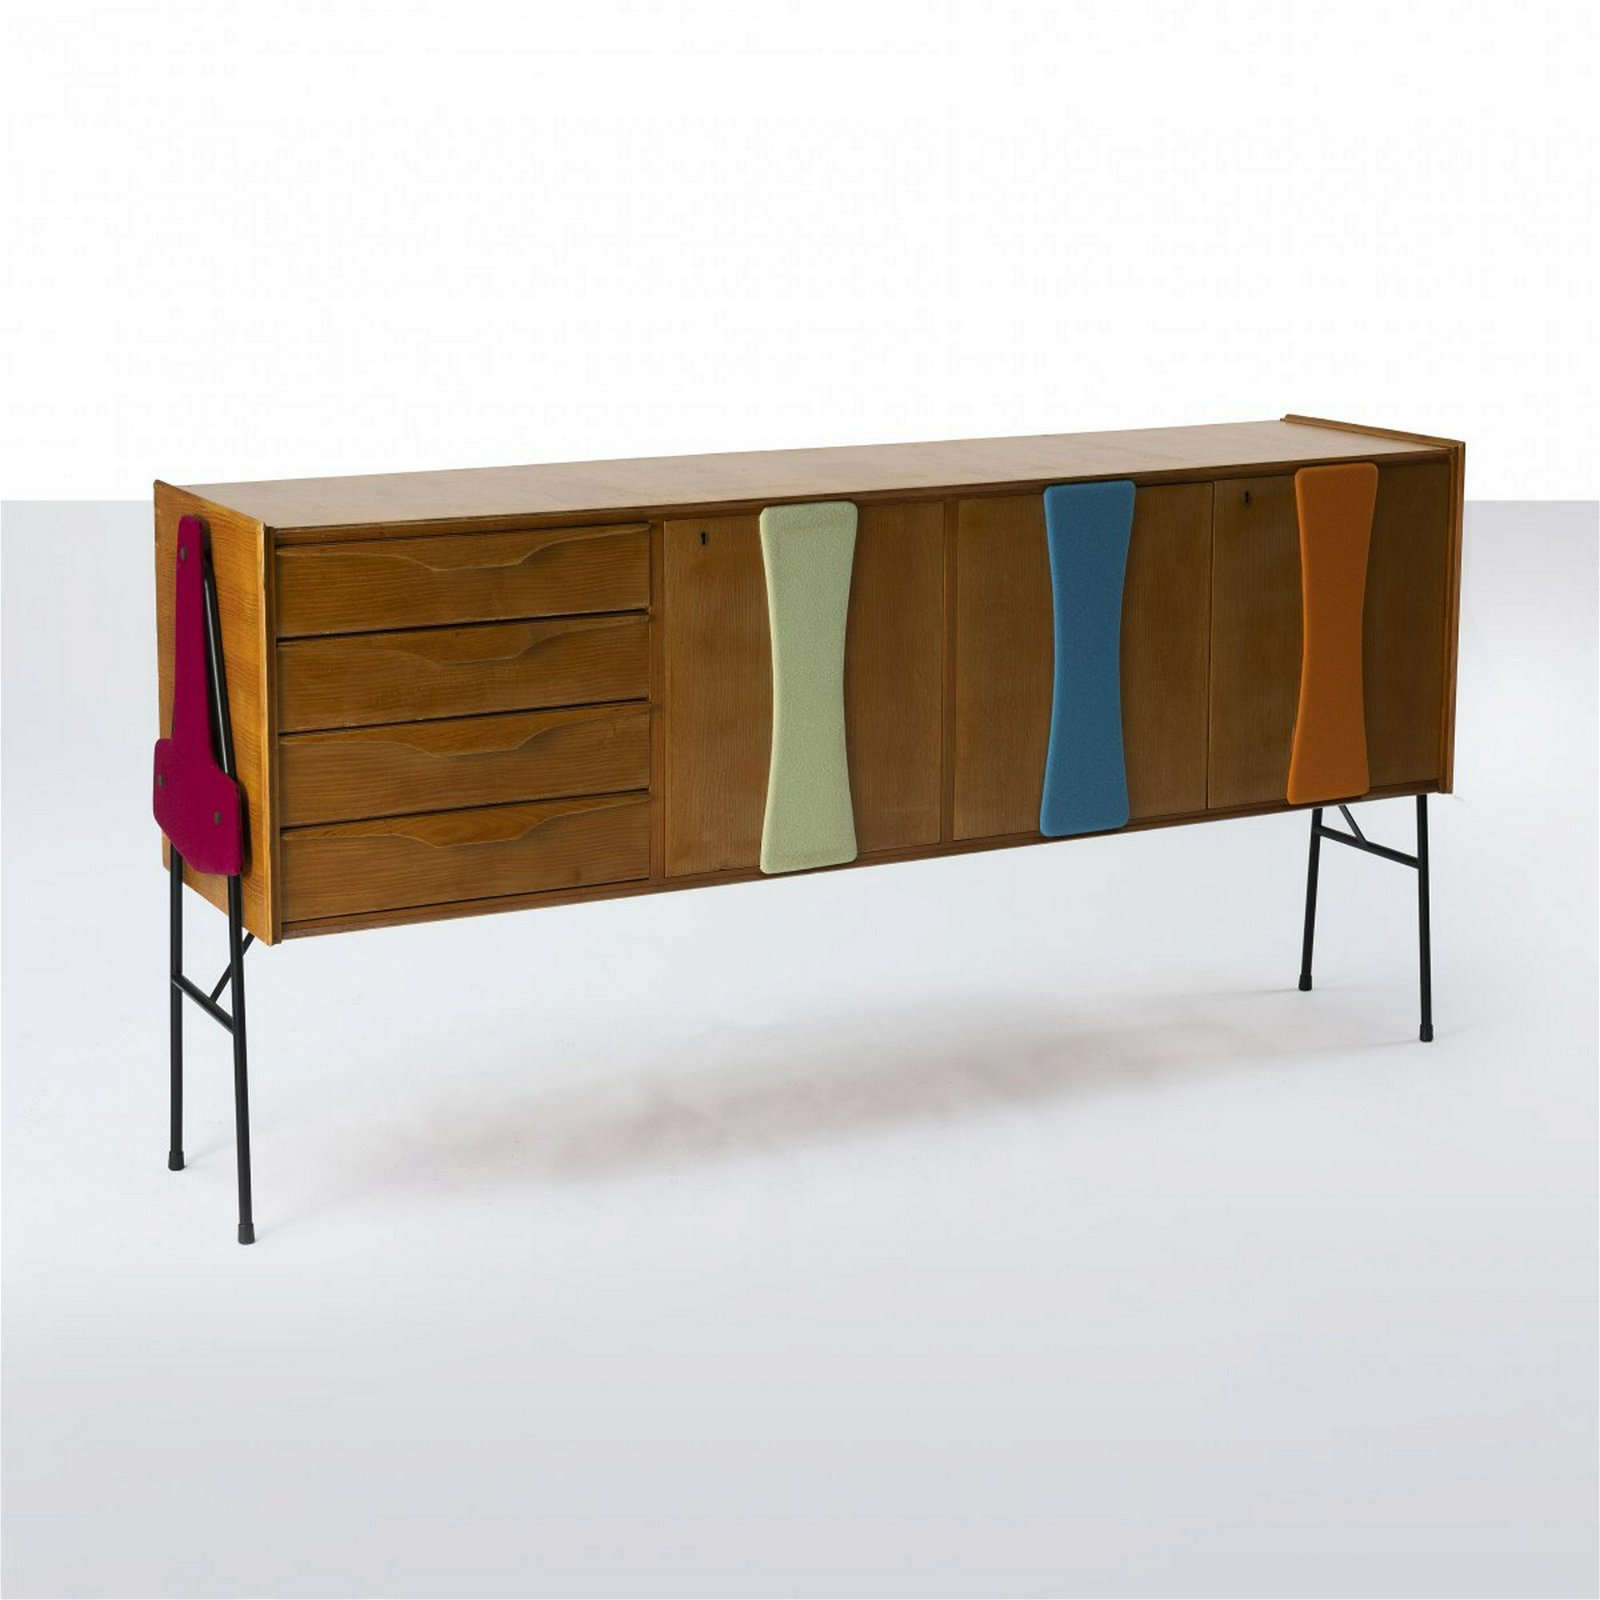 Italy, Sideboard, c.1957